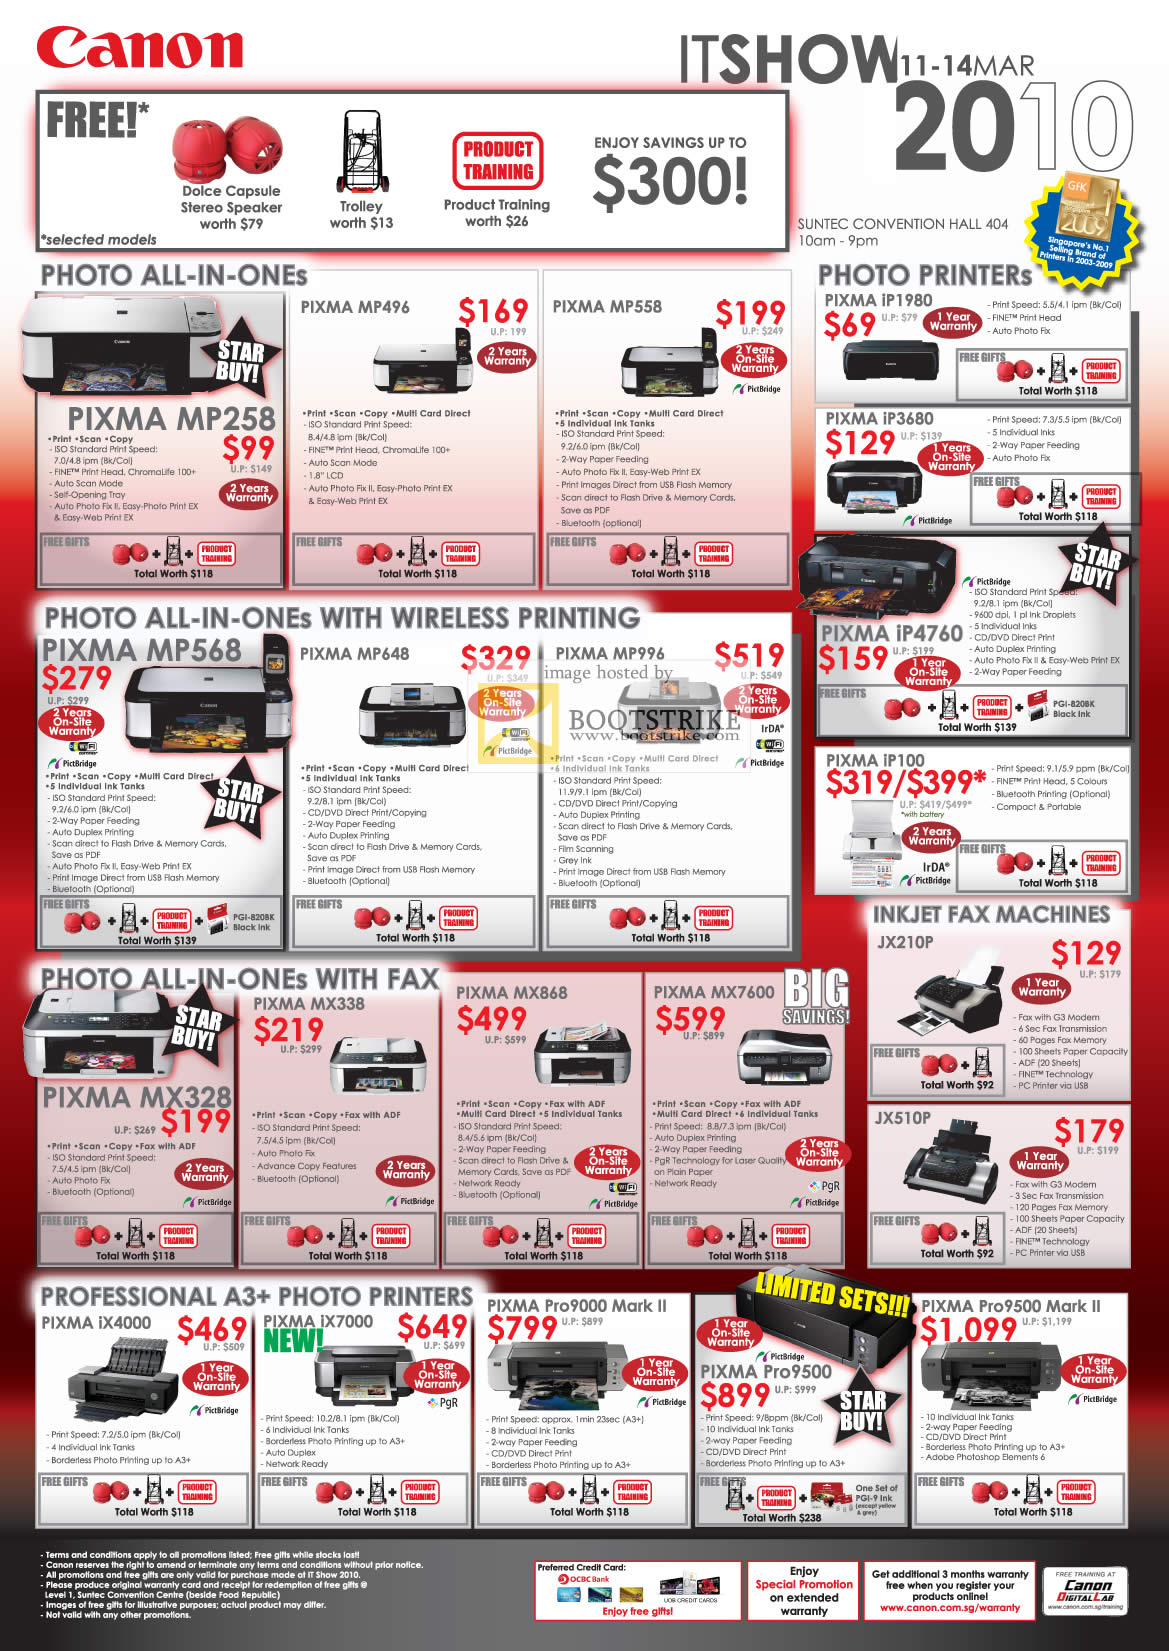 IT Show 2010 price list image brochure of Canon Inkjet Printers Pixma All In One Wireless Printing Photo Fax Professional A3